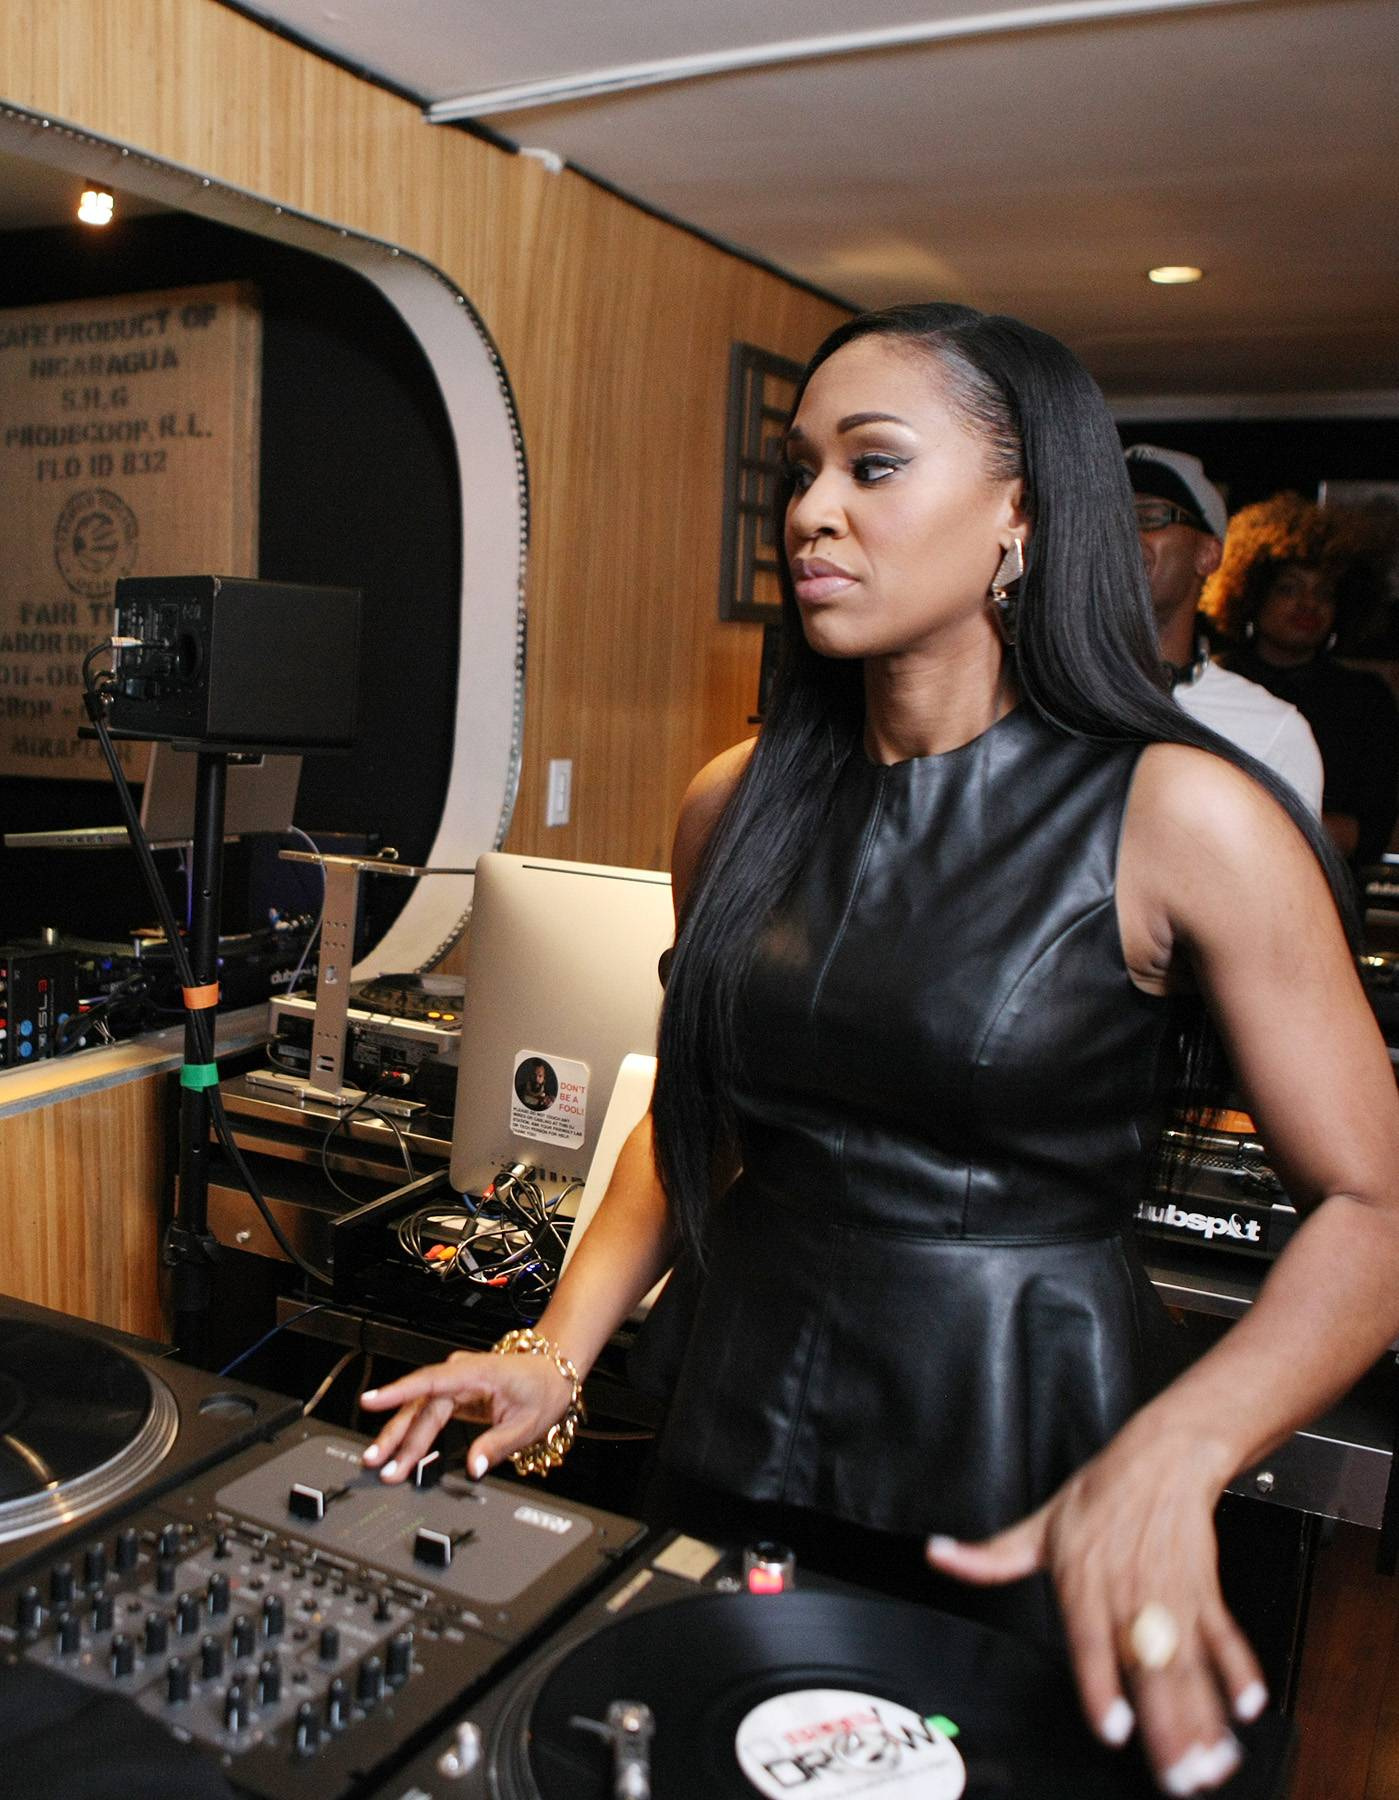 Not Even Looking - DJ Traci Steele is so nice she doesn't have to look. (Photo: Bennett Raglin/BET/Getty Images for BET)